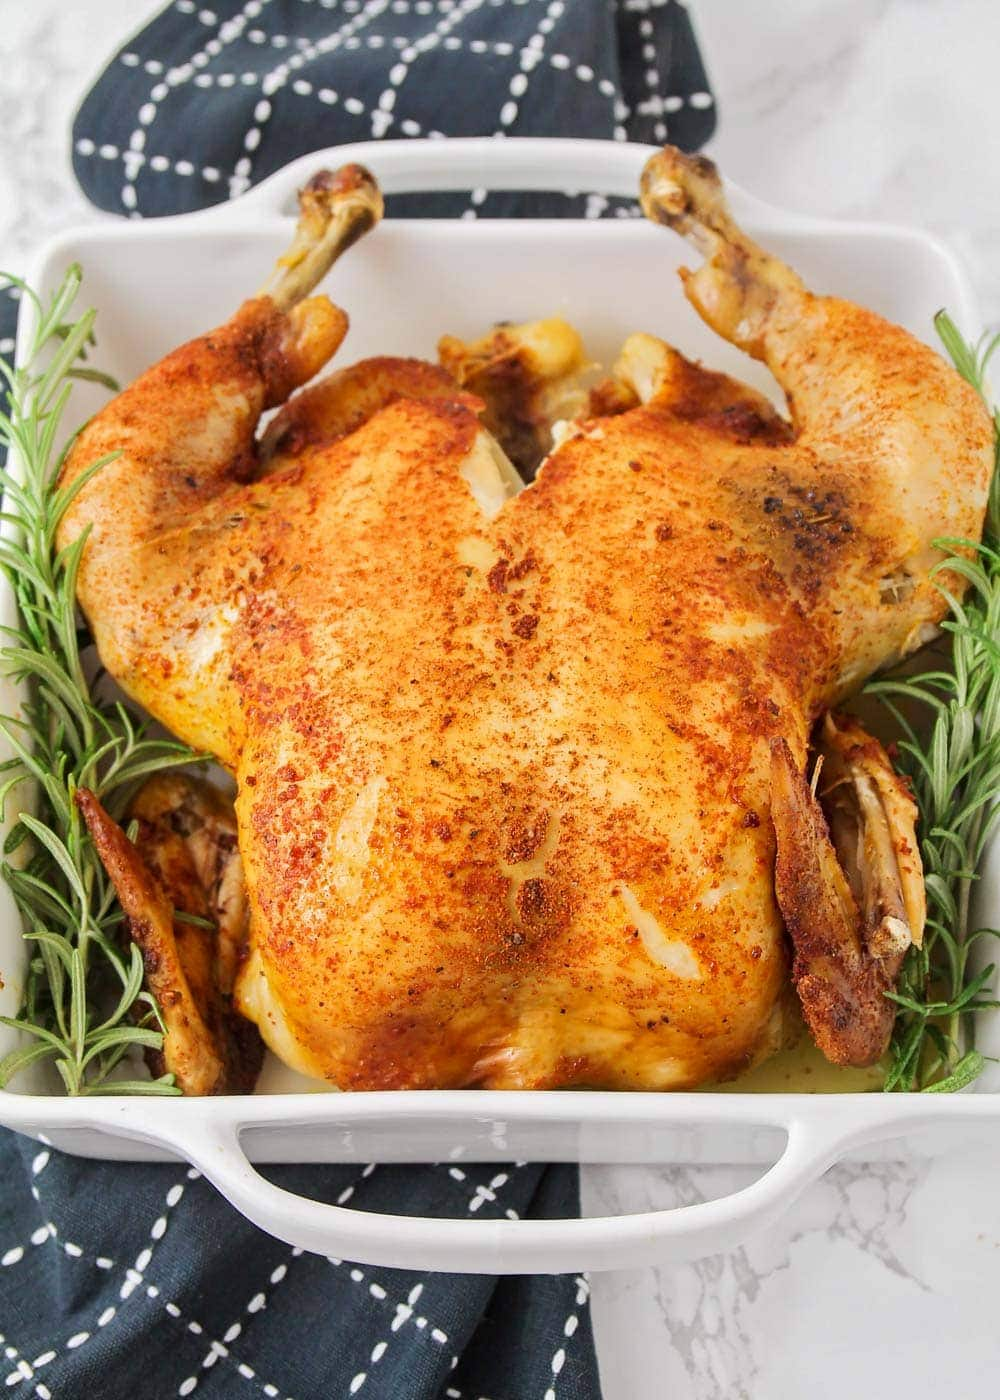 Slow cooker roast chicken in a serving dish with garnish